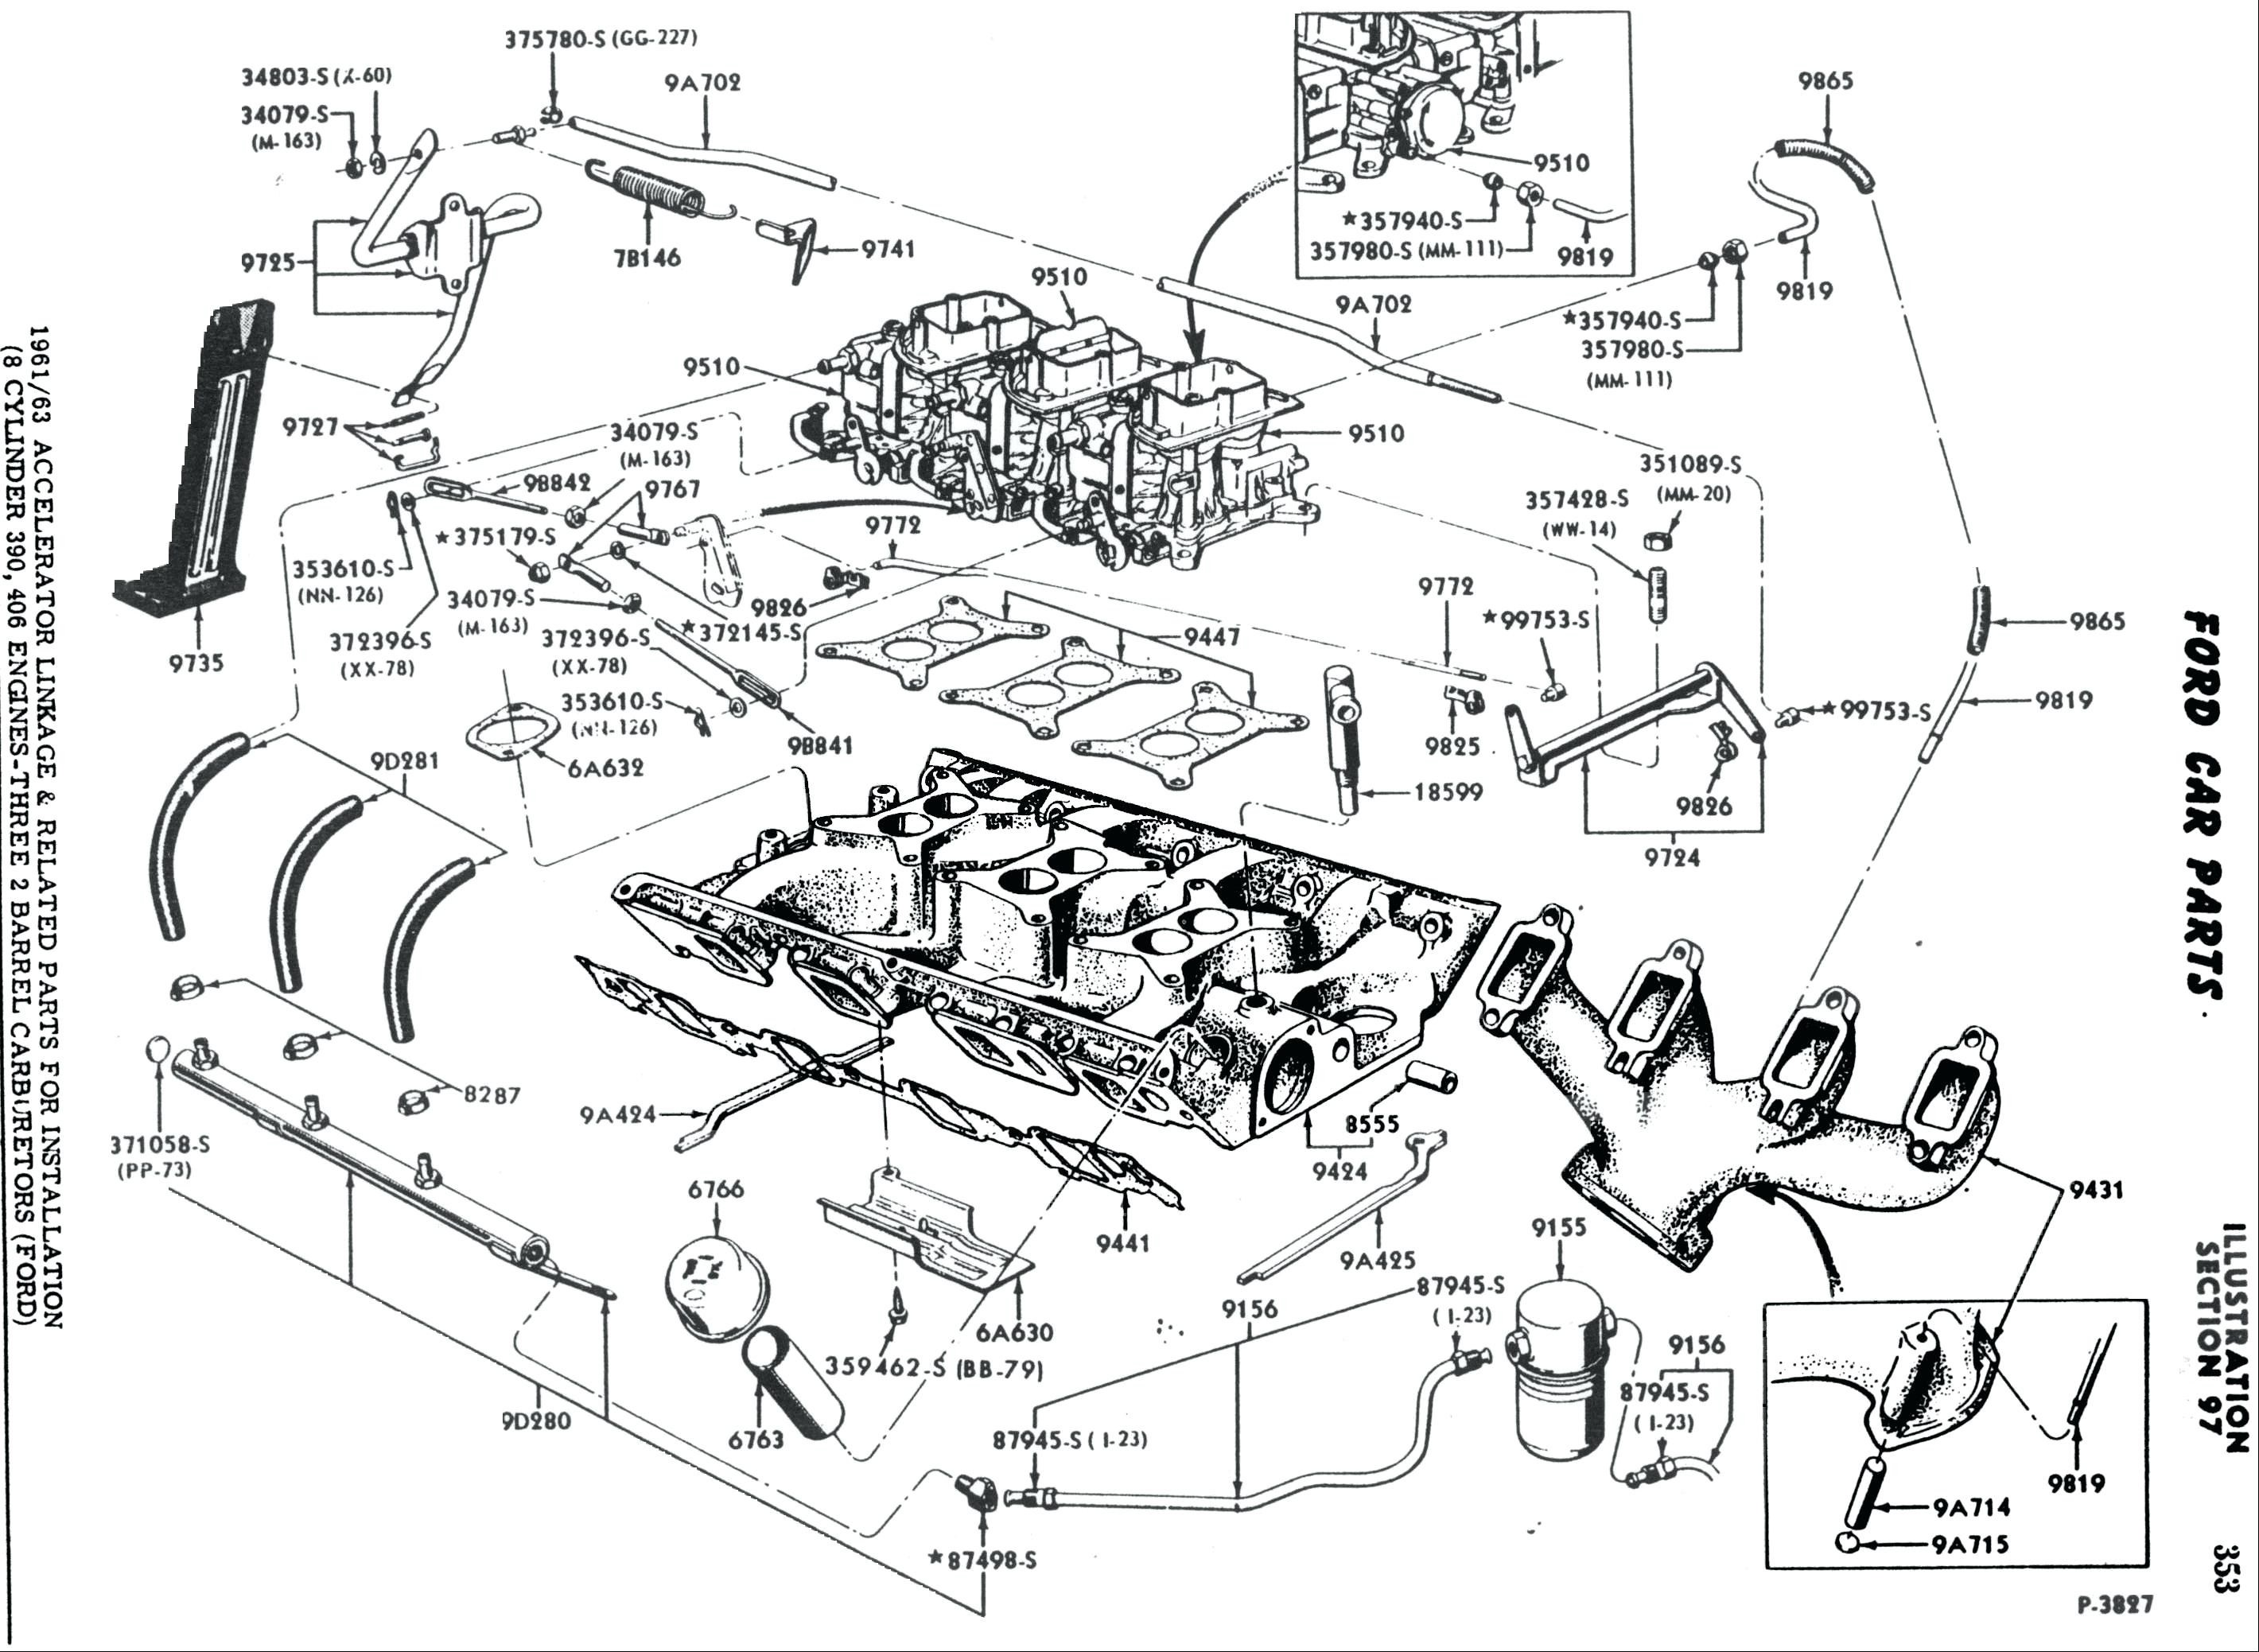 Diagrams Of Car Engines Wrg 7679] Car Engine Schematics Of Diagrams Of Car Engines Wire Harness Bmw X5 35d